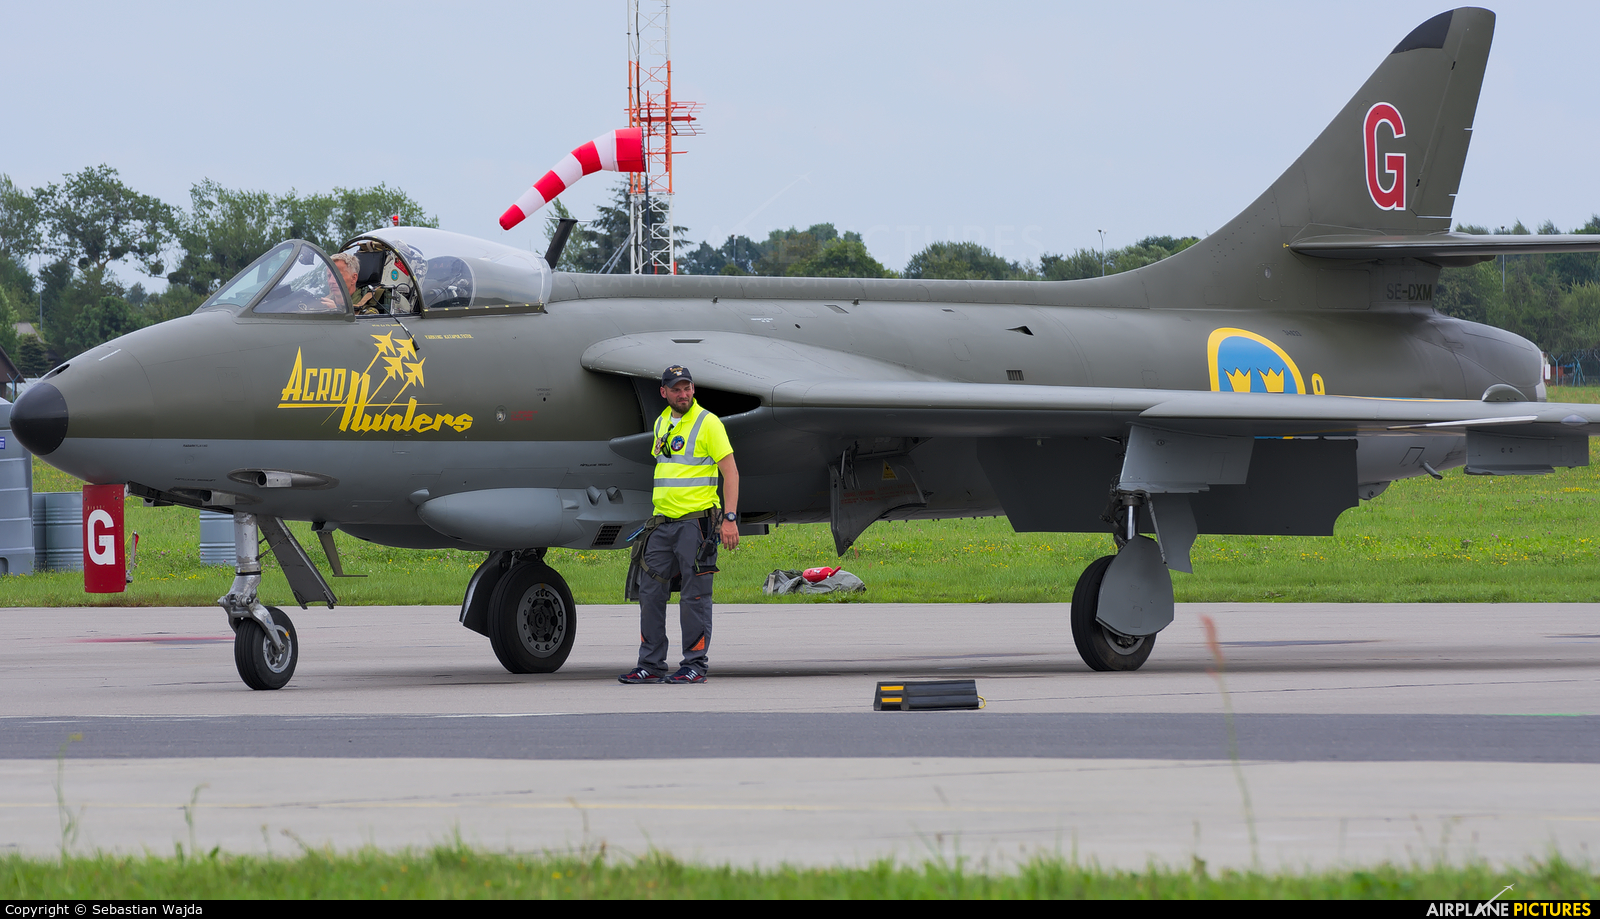 Swedish Air Force Historic Flight SE-DXM aircraft at Gdynia- Babie Doły (Oksywie)